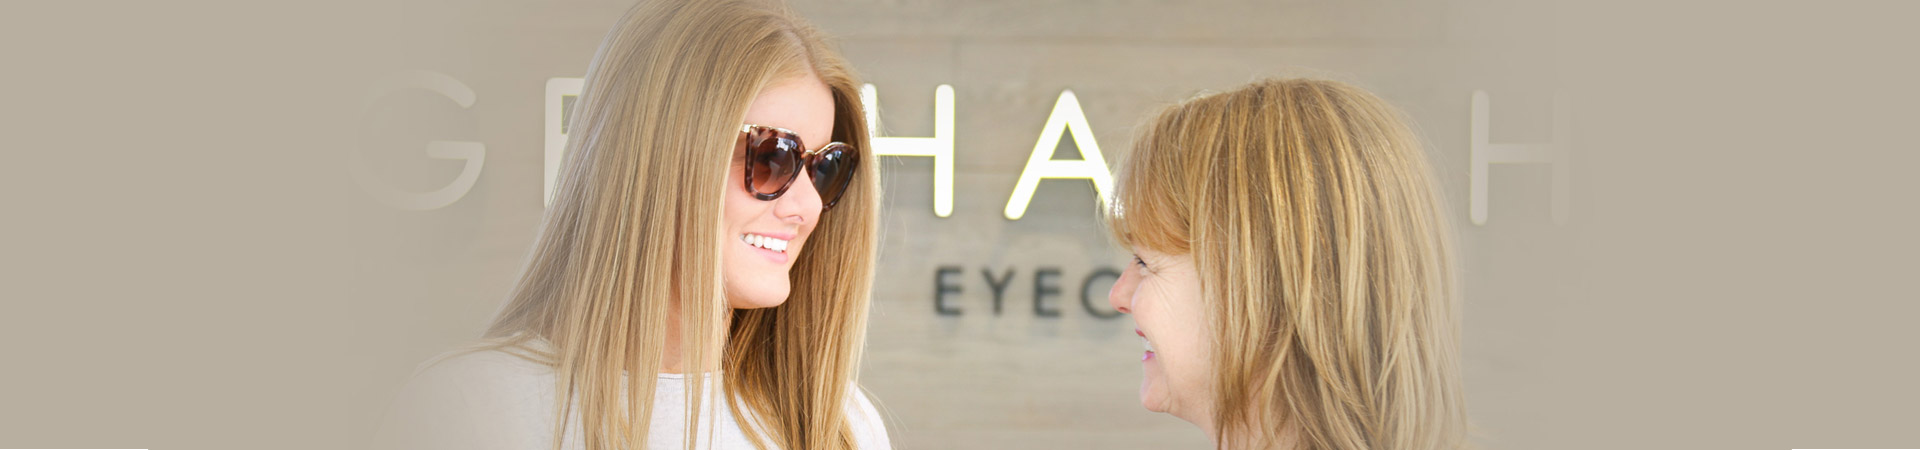 Why Choose Us - Graham Hill Eyecare